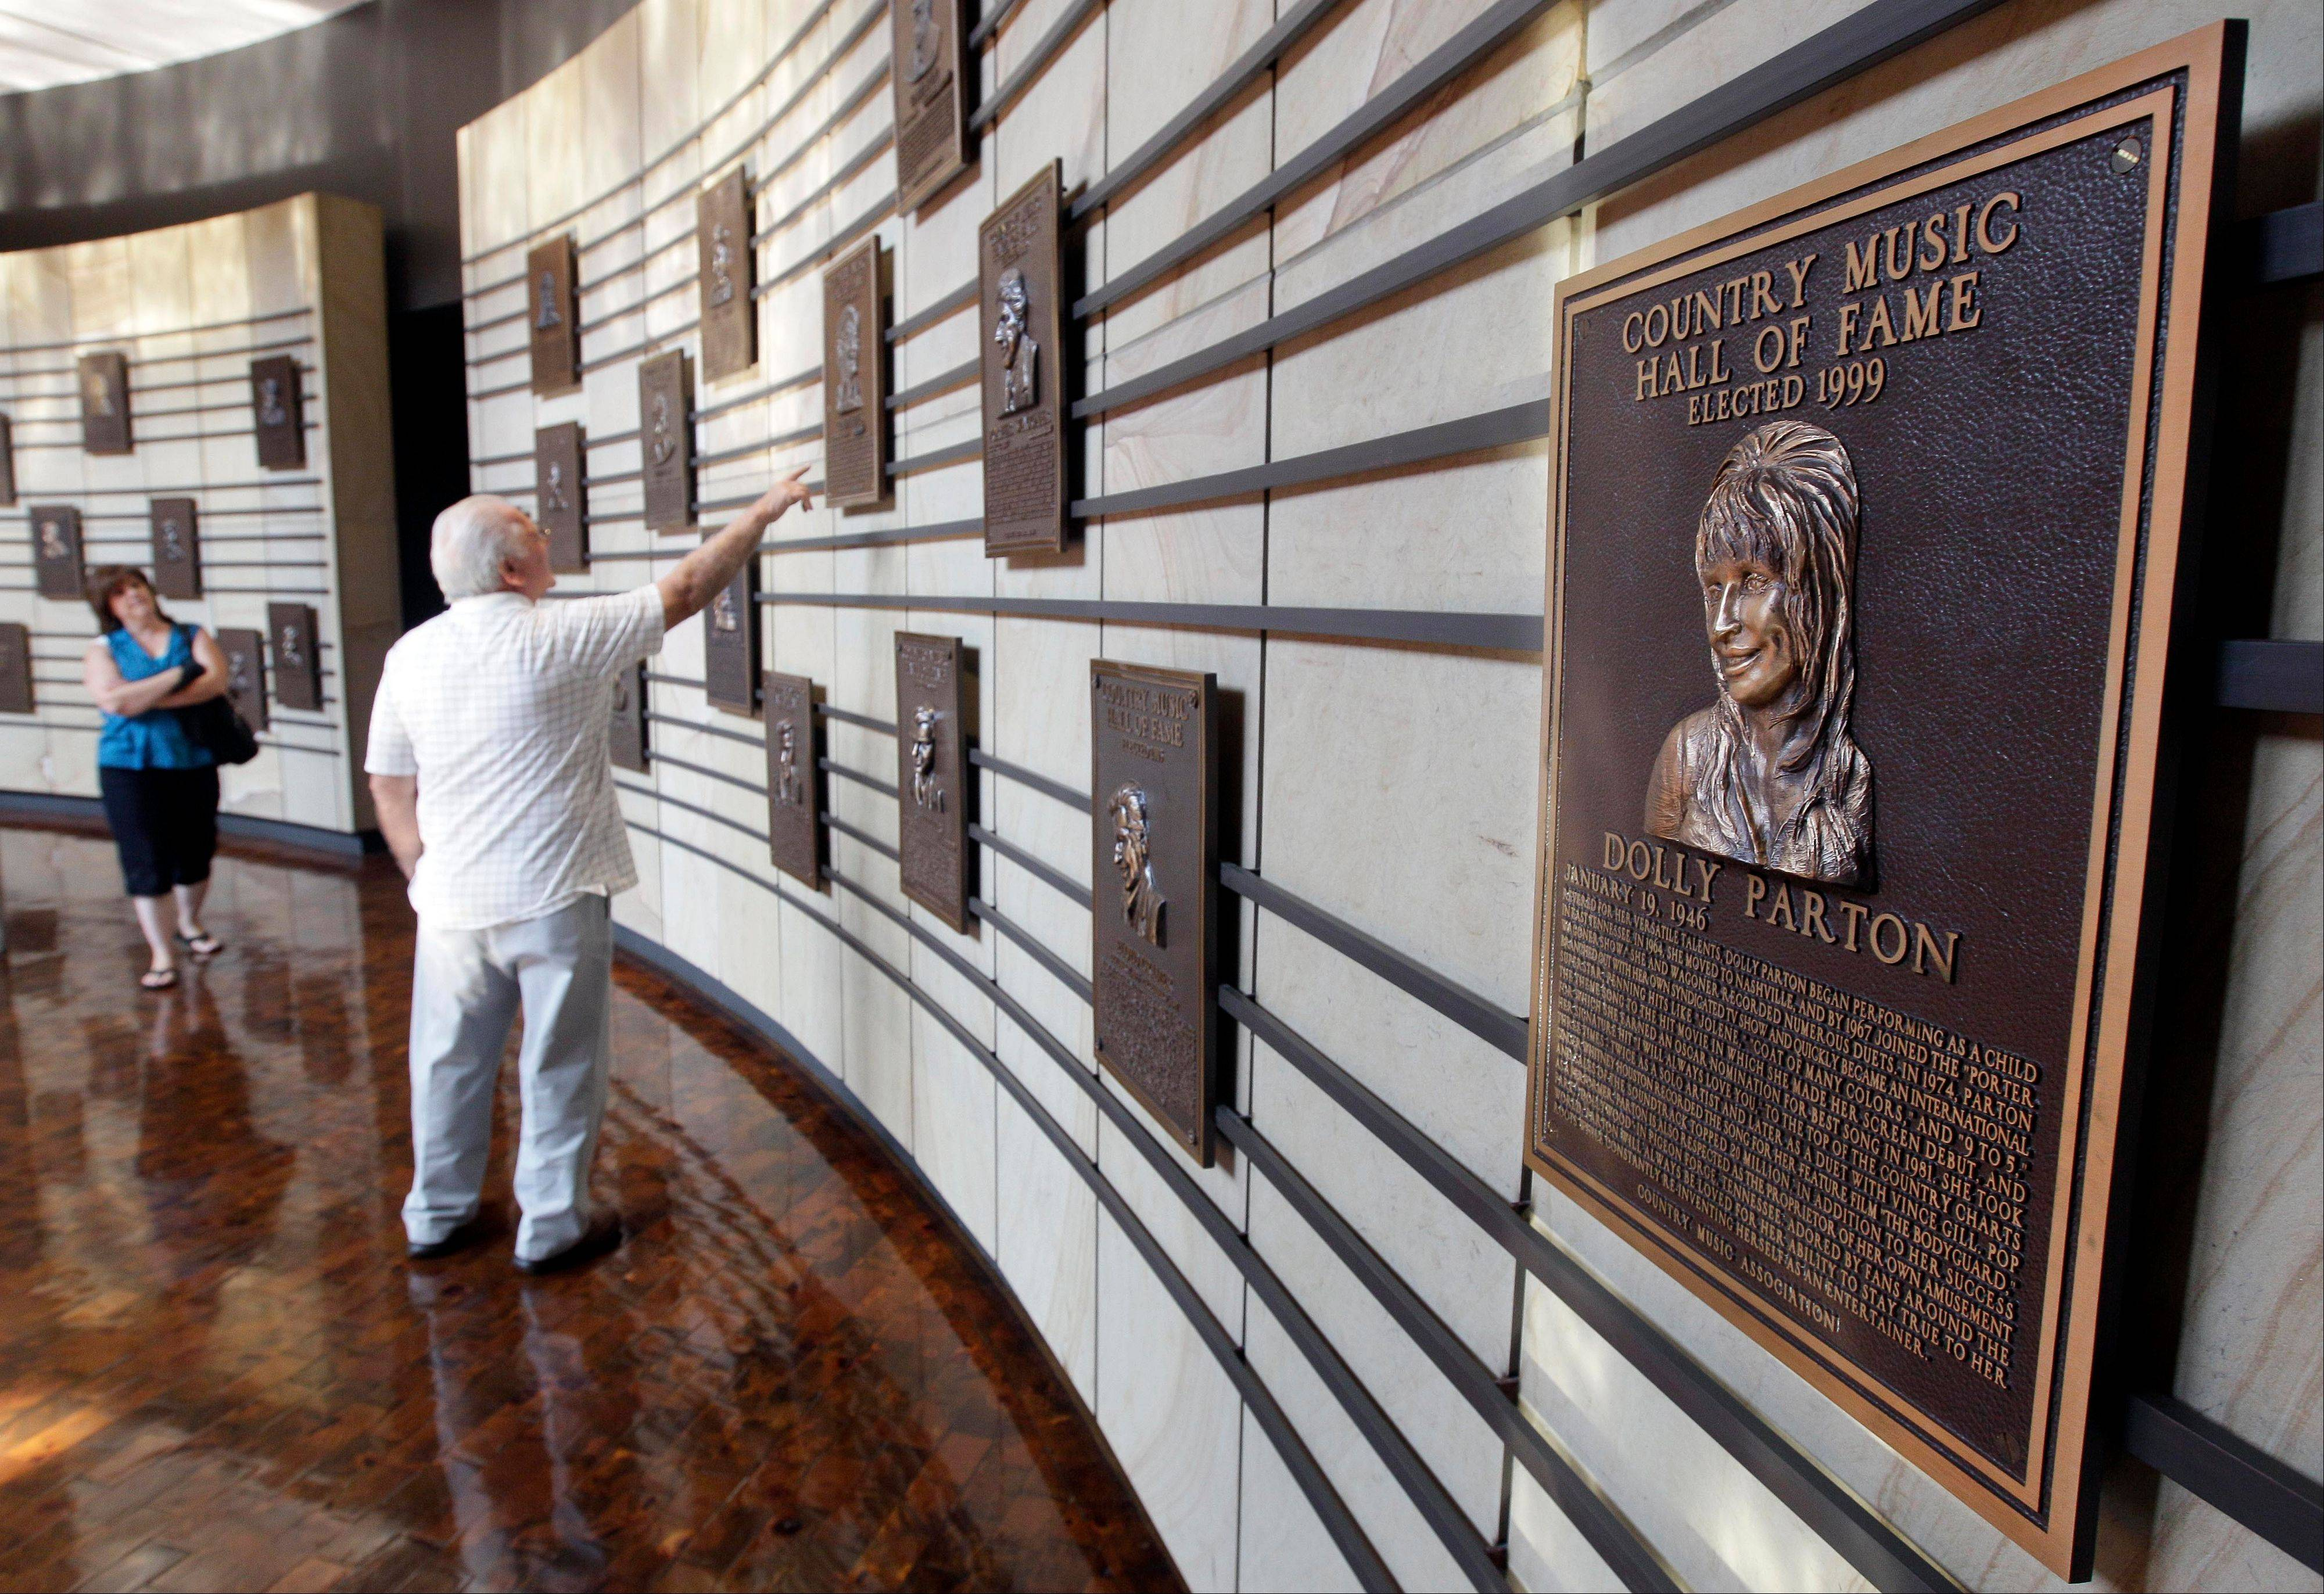 Visitors look at plaques in the Hall of Fame at the Country Music Hall of Fame and Museum in Nashville, Tenn.